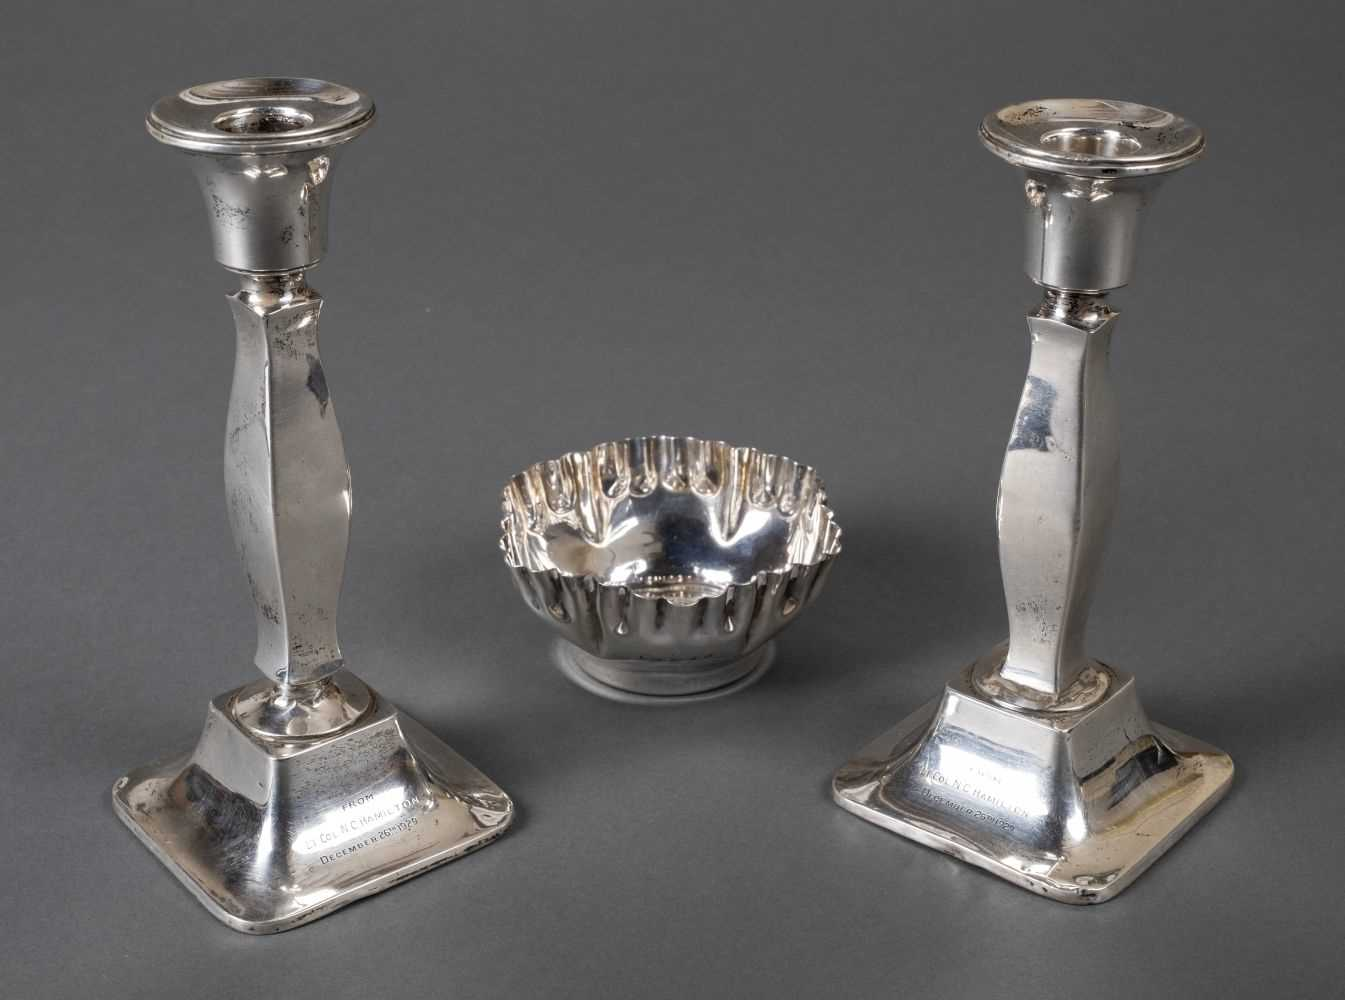 Lot 38 - Mixed silver. A pair of silver candlesticks and bowl